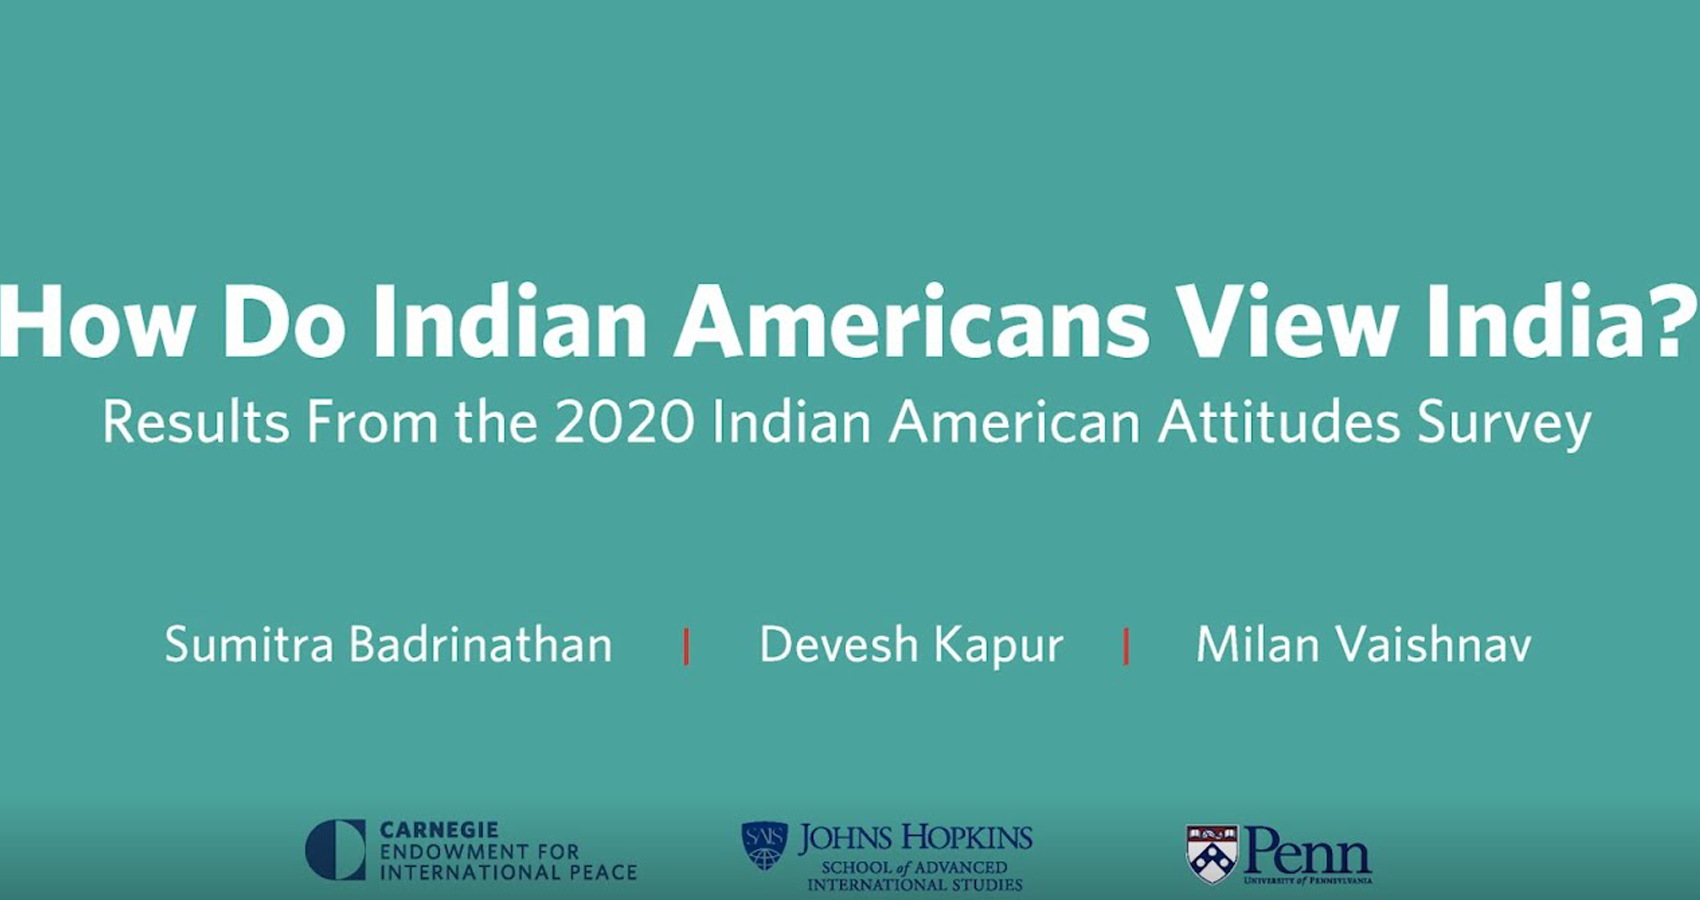 How Do Indian Americans View India?